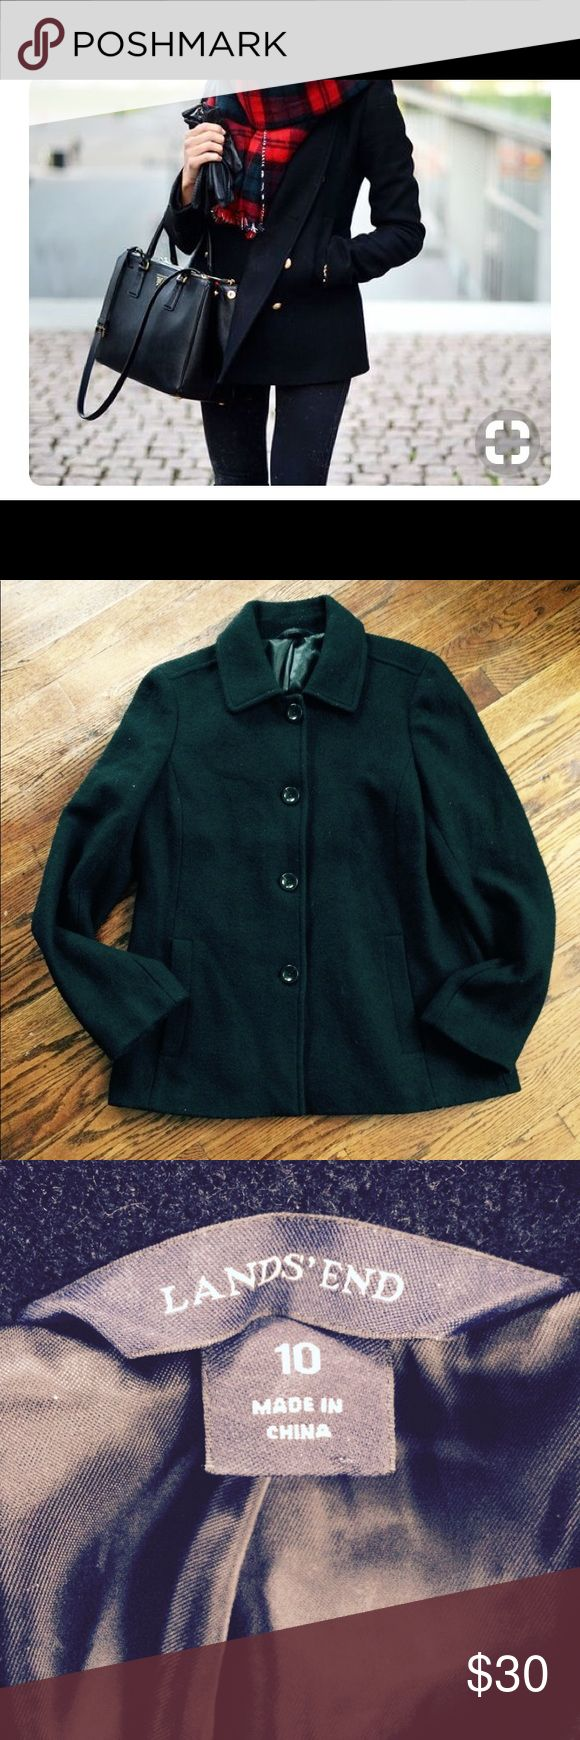 Land's End black pea coat Black button up pea coat. Very nice quality. Thick material. All buttons intact. Model pics are just for styling ideas, but this coat is a basic that can be worn with everything!  Smoke free. Bundle 3 items and save 25%! Lands' End Jackets & Coats Pea Coats